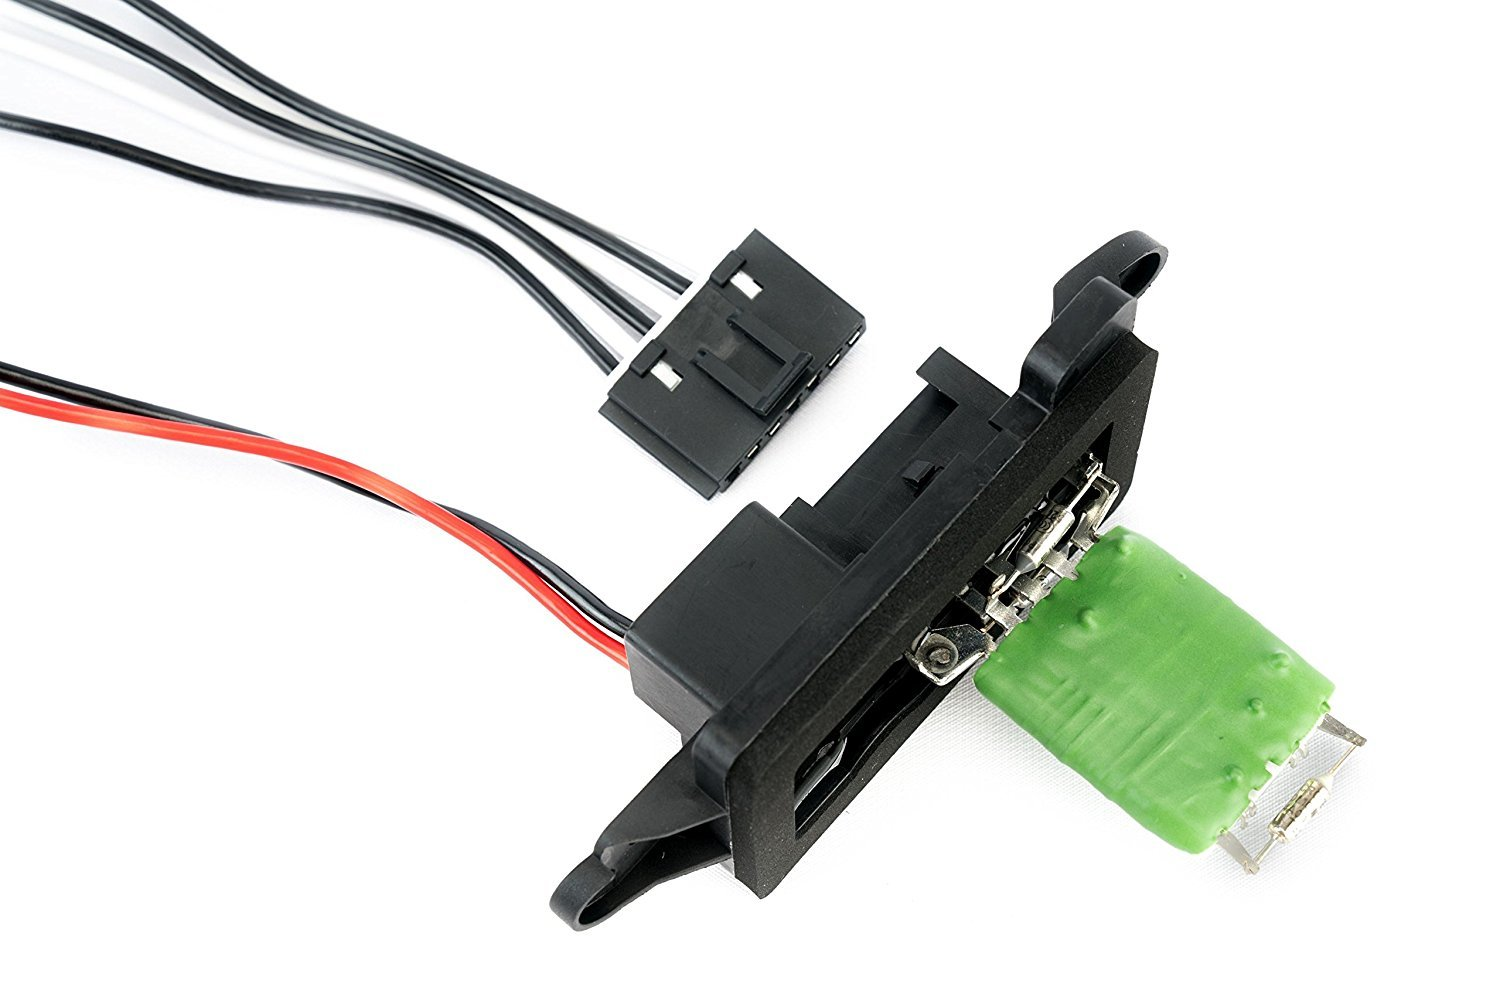 Ac Blower Motor Resistor Kit With Harness Replaces Gm Door Actuator Wiring 973 405 15 81086 22807123 Fits Chevy Silverado Tahoe Suburban Avalanche Gmc Sierra Yukon Cadillac Escalade Hvac Fan Automotive